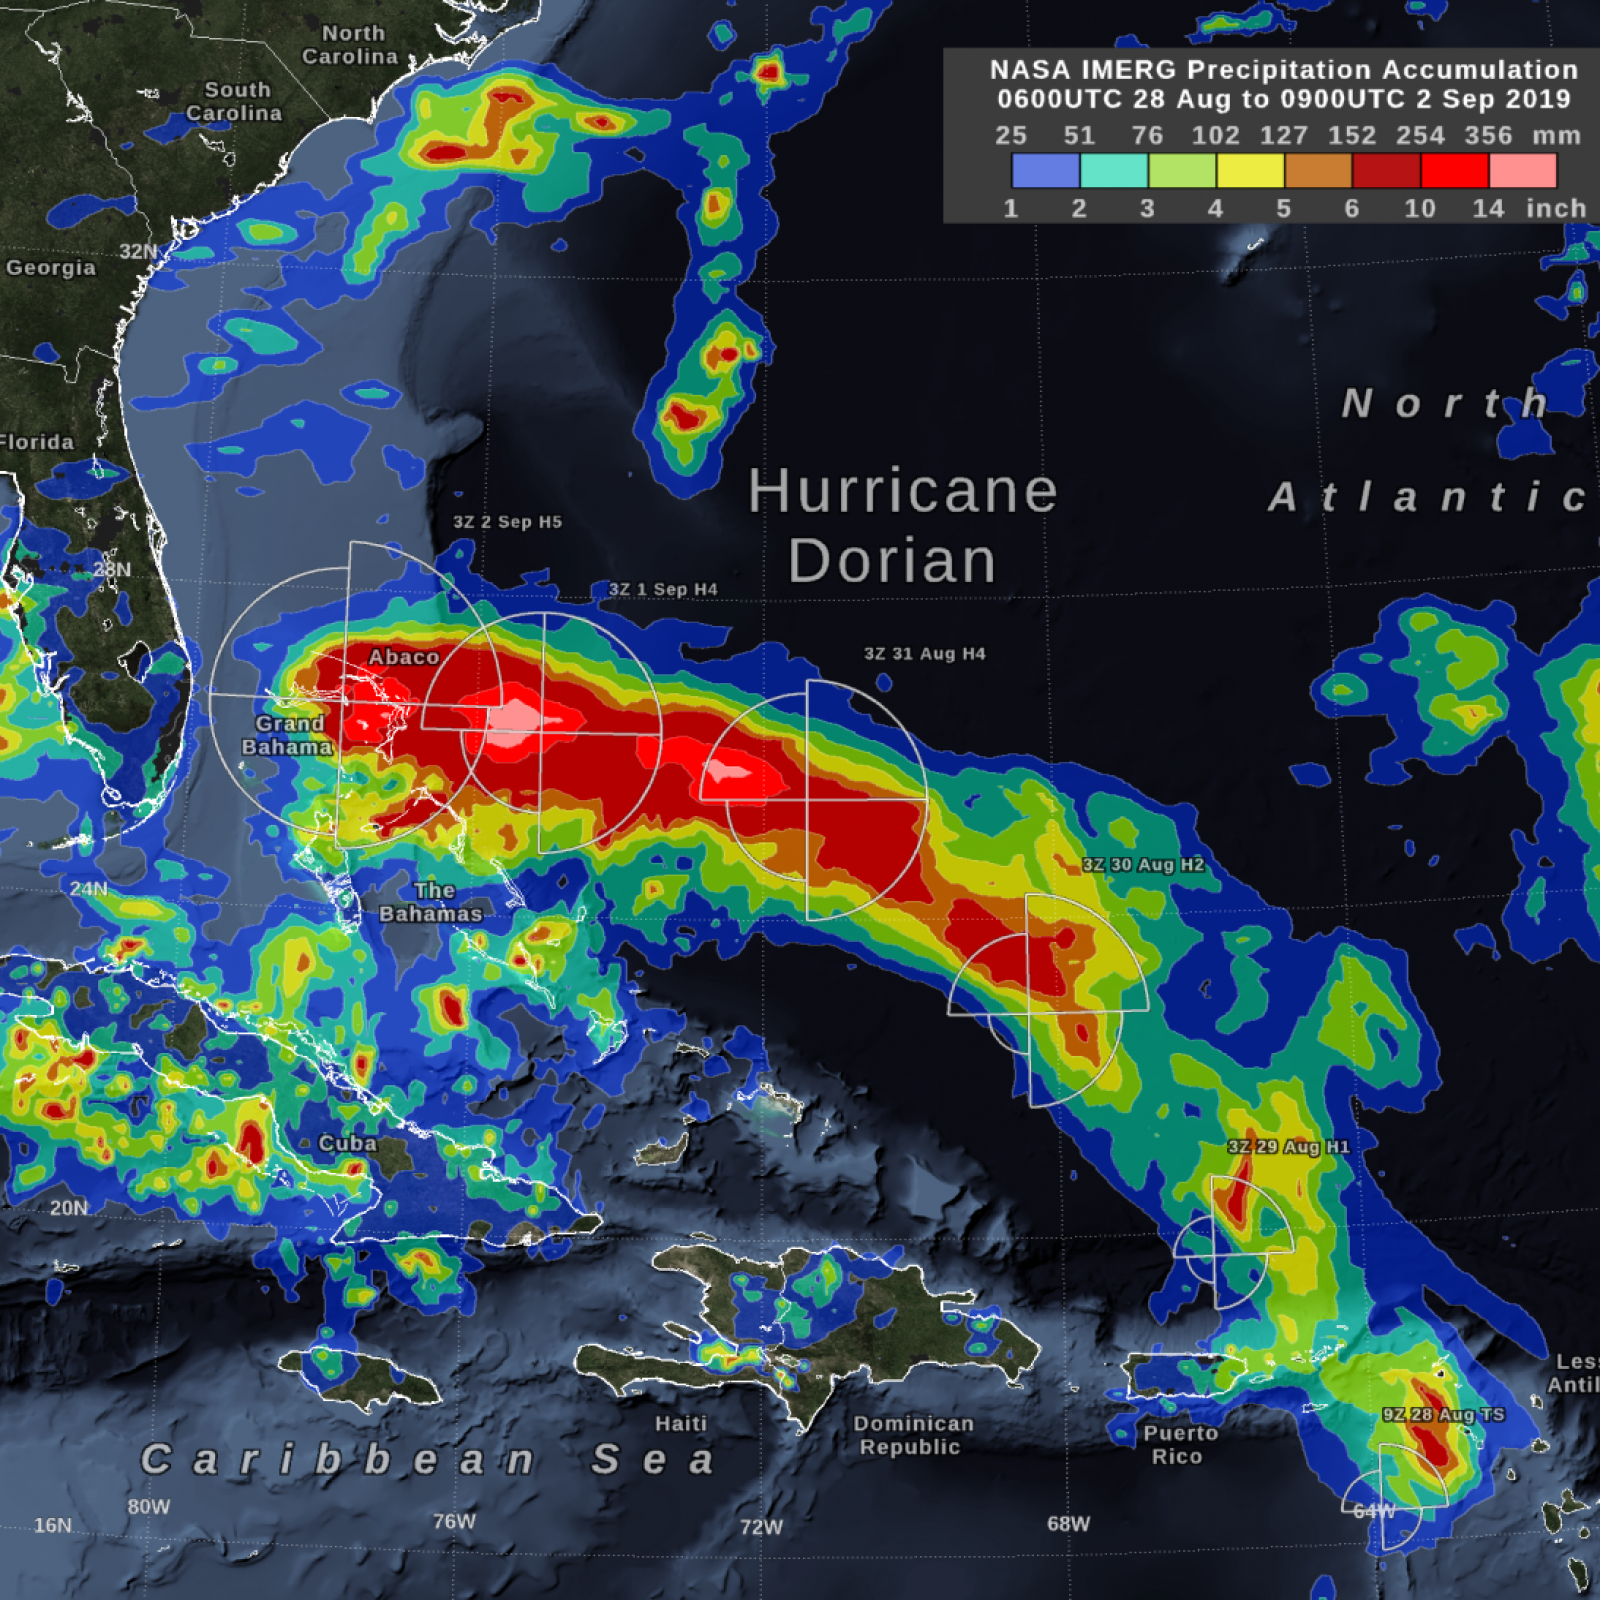 NASA Reveals Spectacular, Terrifying Images and Videos of ... on dunnellon fl on map of florida, ups map florida, aerial of florida, satellite view of orlando, marine map of florida, live radar weather map florida, detailed map of florida, live satellite map florida, view of tampa florida, digital map of florida, google maps florida, computer map of florida, transportation of florida, full large map of florida, map map of florida, telephone map of florida, flood map of florida, traffic map of florida, hd map of florida, drought map of florida,